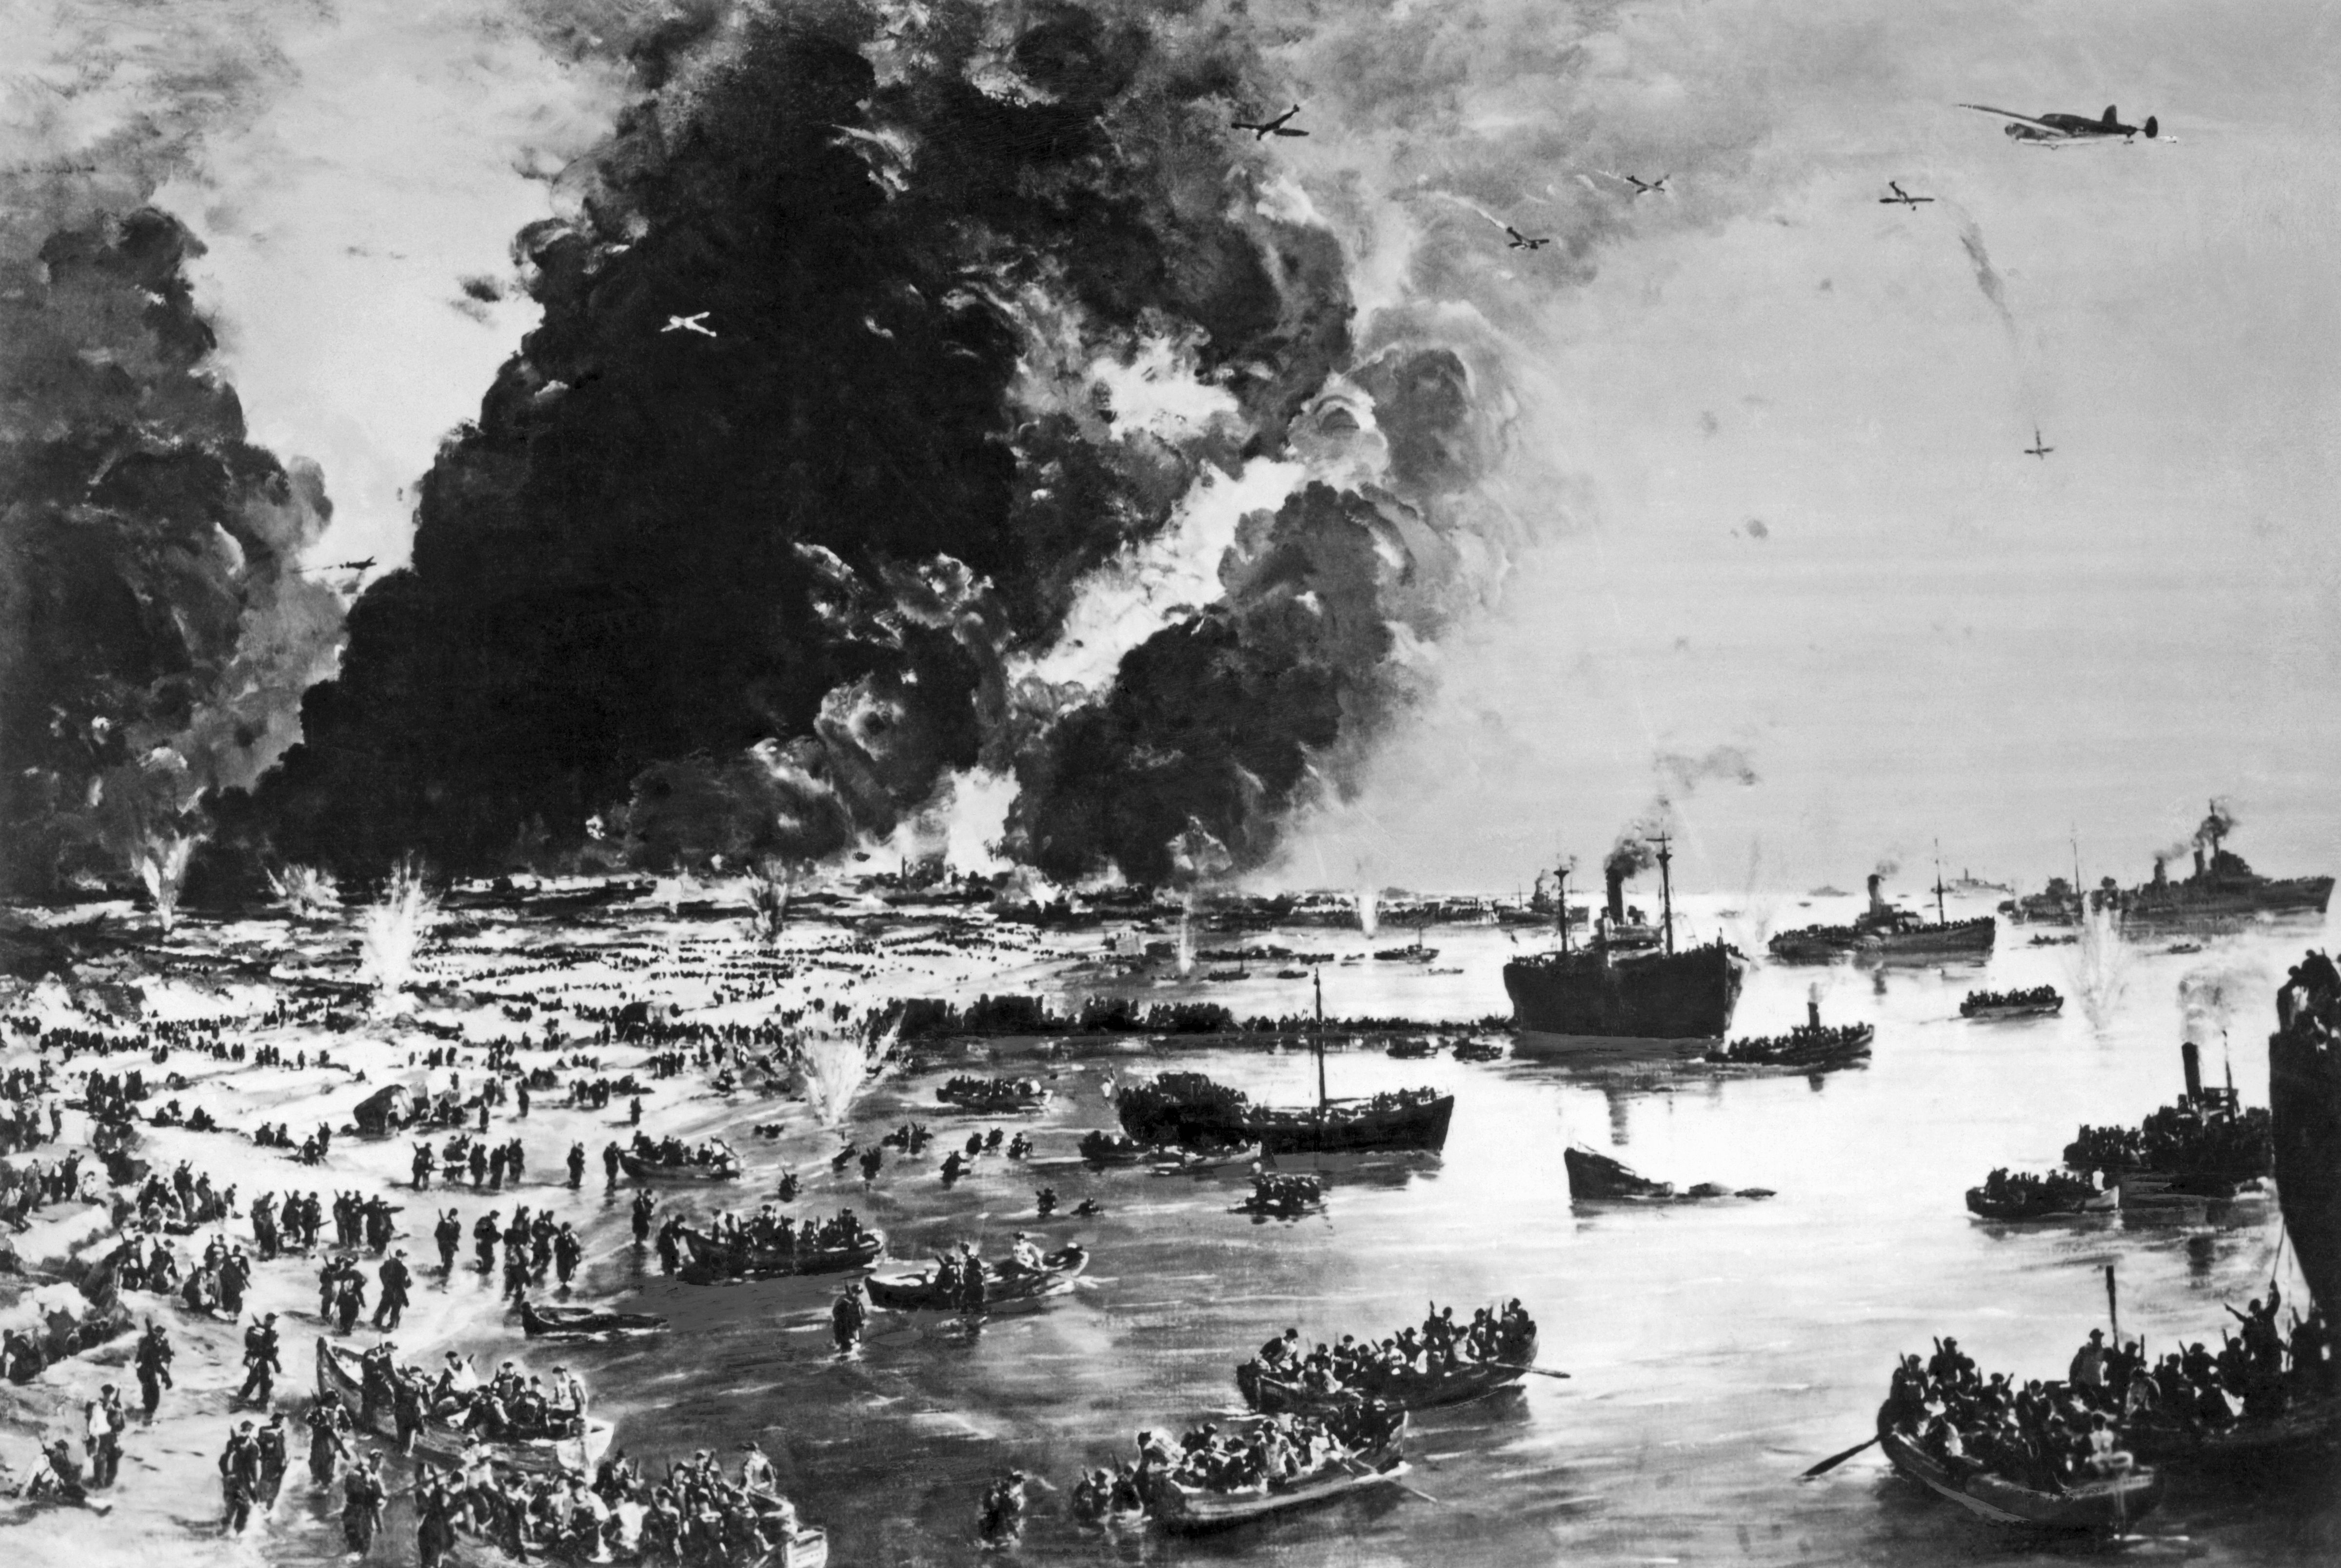 Box Stock Project >> Dunkirk Evacuation: Real Life Photos From the 1940 Battle | IndieWire